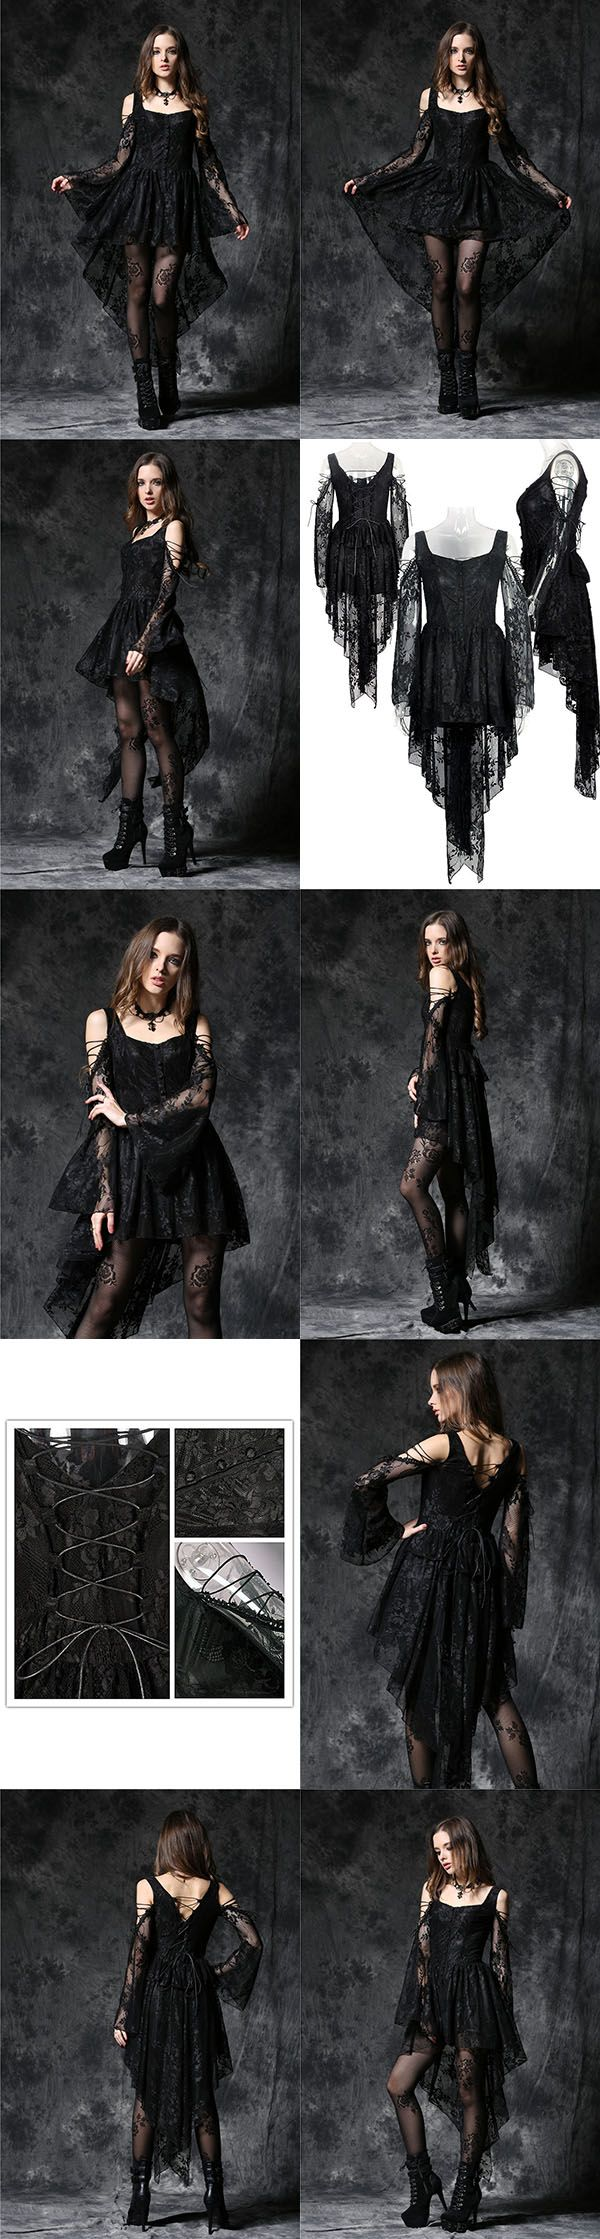 Dark In Love Gothic Ghost Dovetail Lace Dress with Button Front Detail.   This is a stunning black lace gothic mini dress which has a row of black lace covered buttons down the front and long black train at the back. There are shoulder cut outs at the top of the flared sleeves which are laced with black cord. The back of the dress also has corset style cord lacing. A stunning dress for any gothic wardrobe